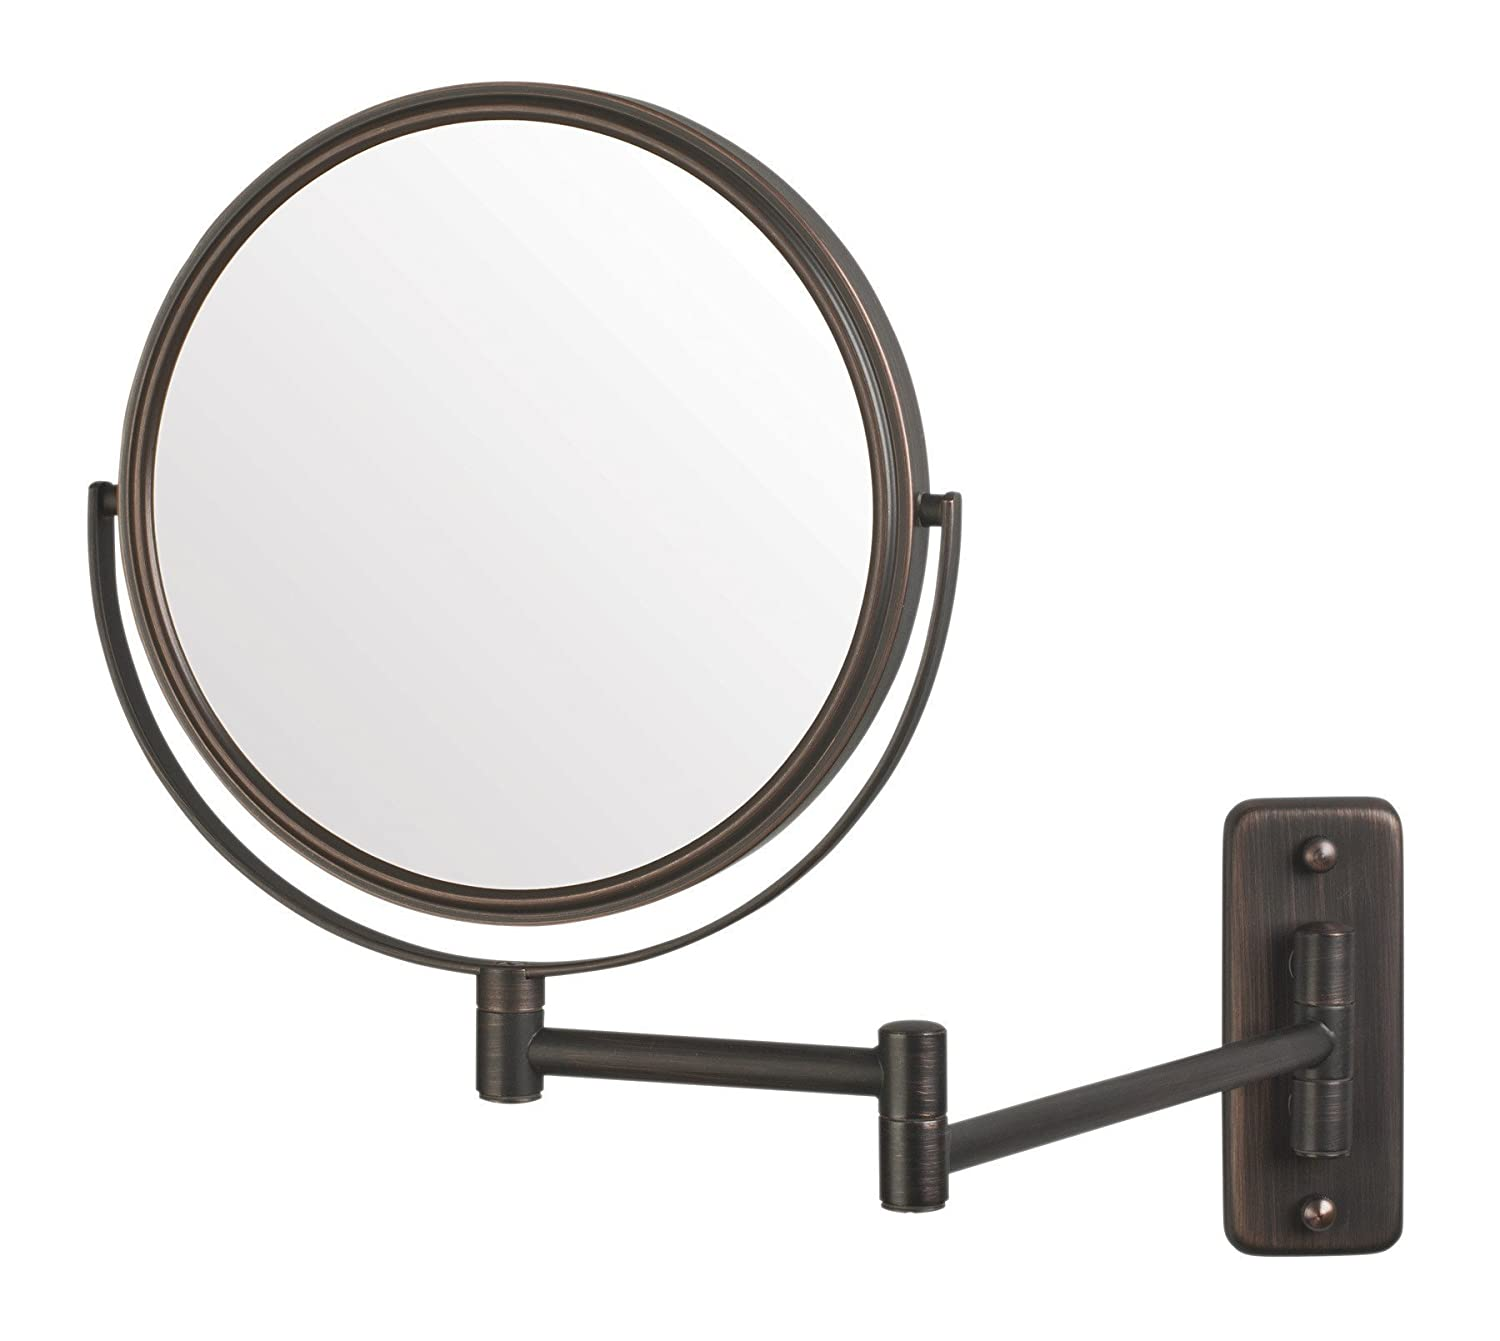 Jerdon JP7506N 8-Inch Two-Sided Swivel Wall Mount Mirror with 5x Magnification, 13.5-Inch Extension, Matte Nickel Finish